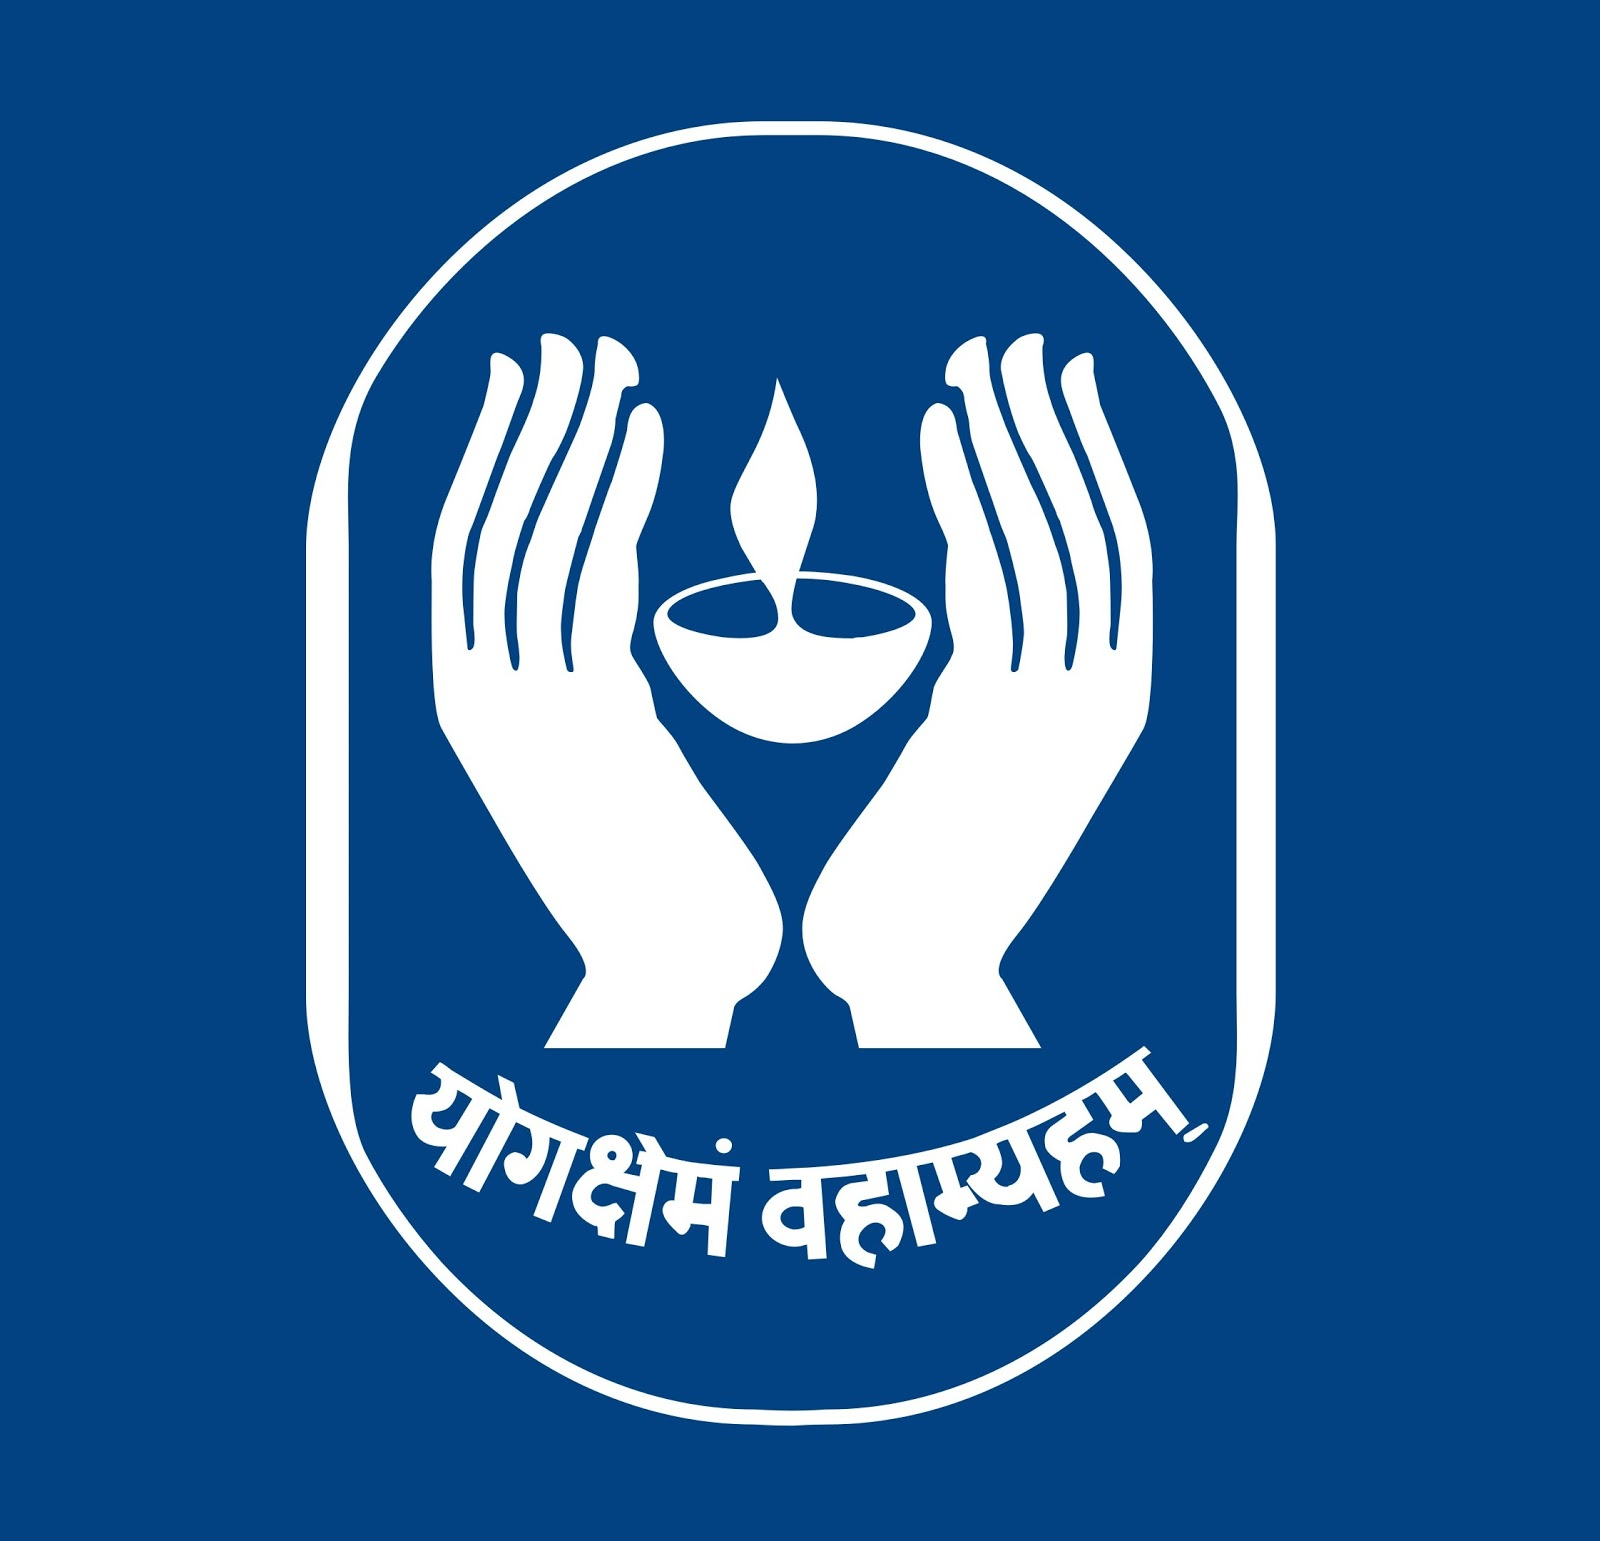 Blogging with lic recruitment 2013 ado apply online 5201 post lic recruitment 2013 5201 ado post life insurance corporation lic of india invites applications for recruitment of 5201 apprentice development officers biocorpaavc Images